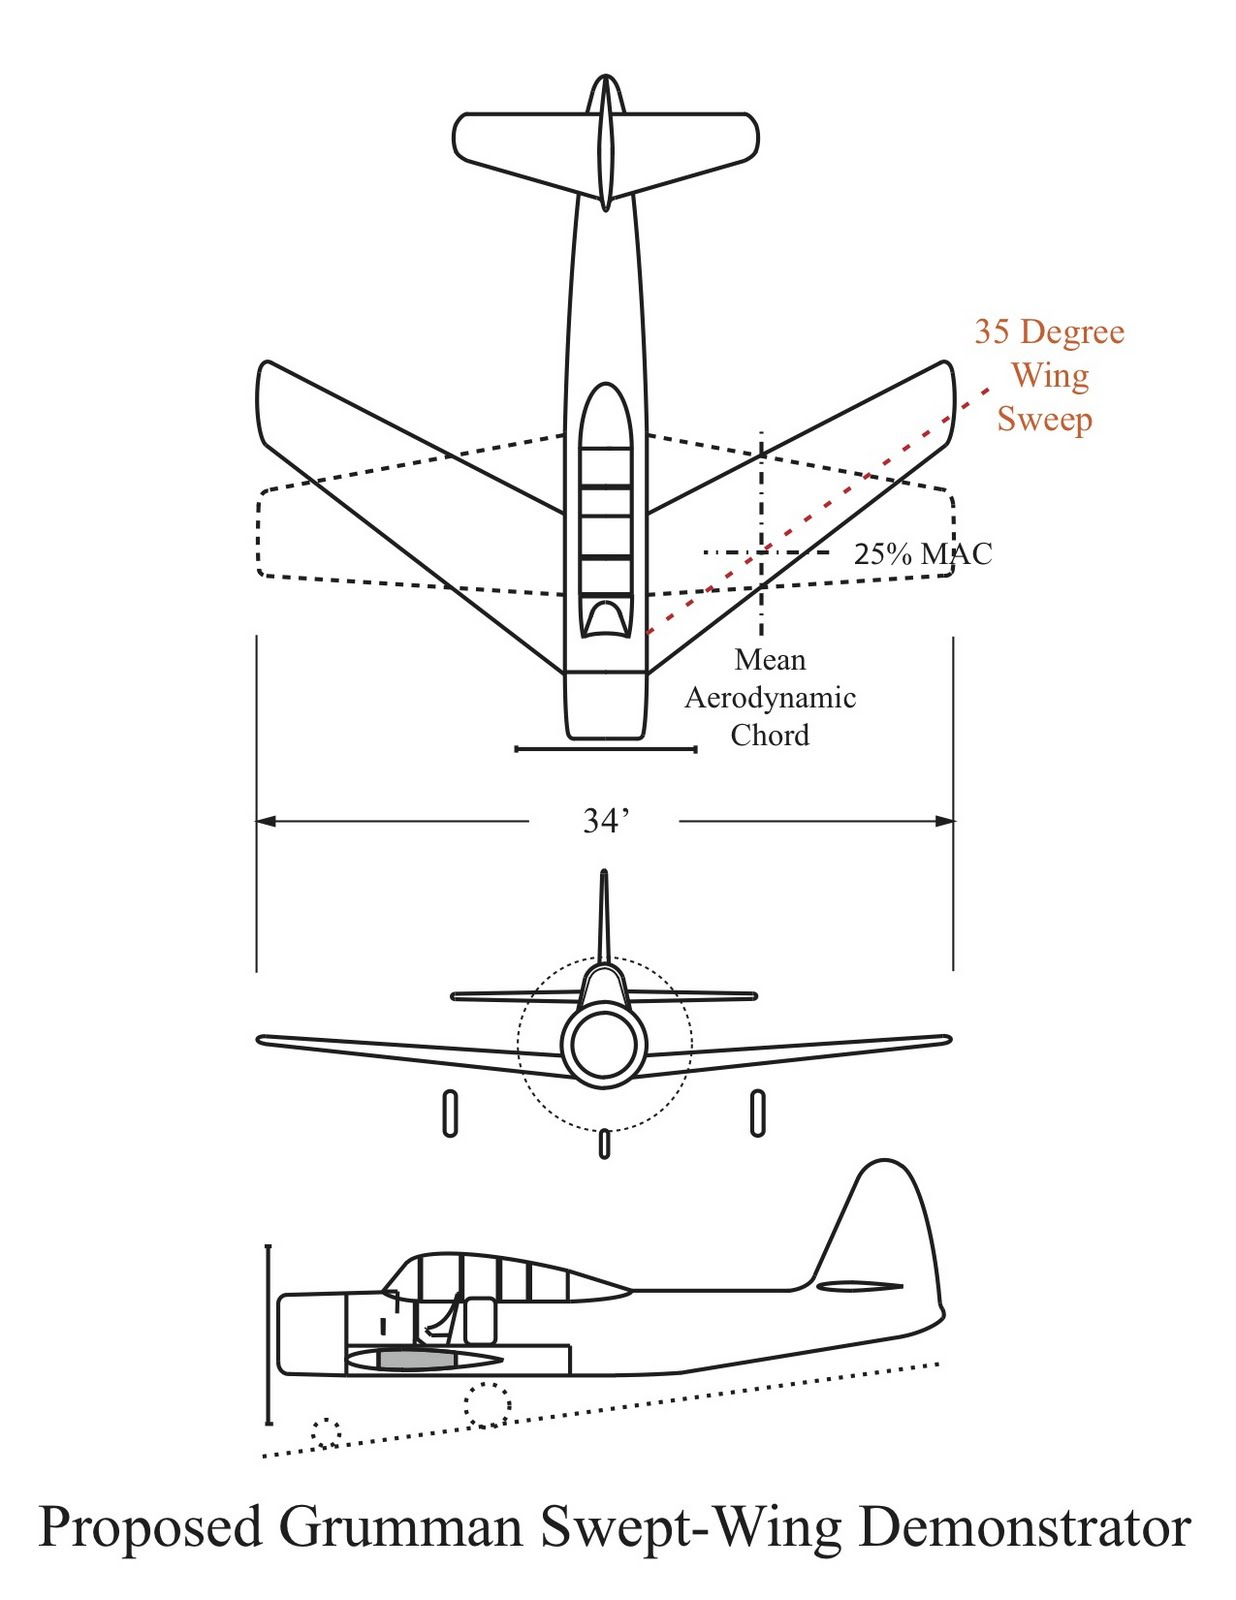 Us navy aircraft history april 2011 bell l 39 wing sweep evaluation hexwebz Choice Image